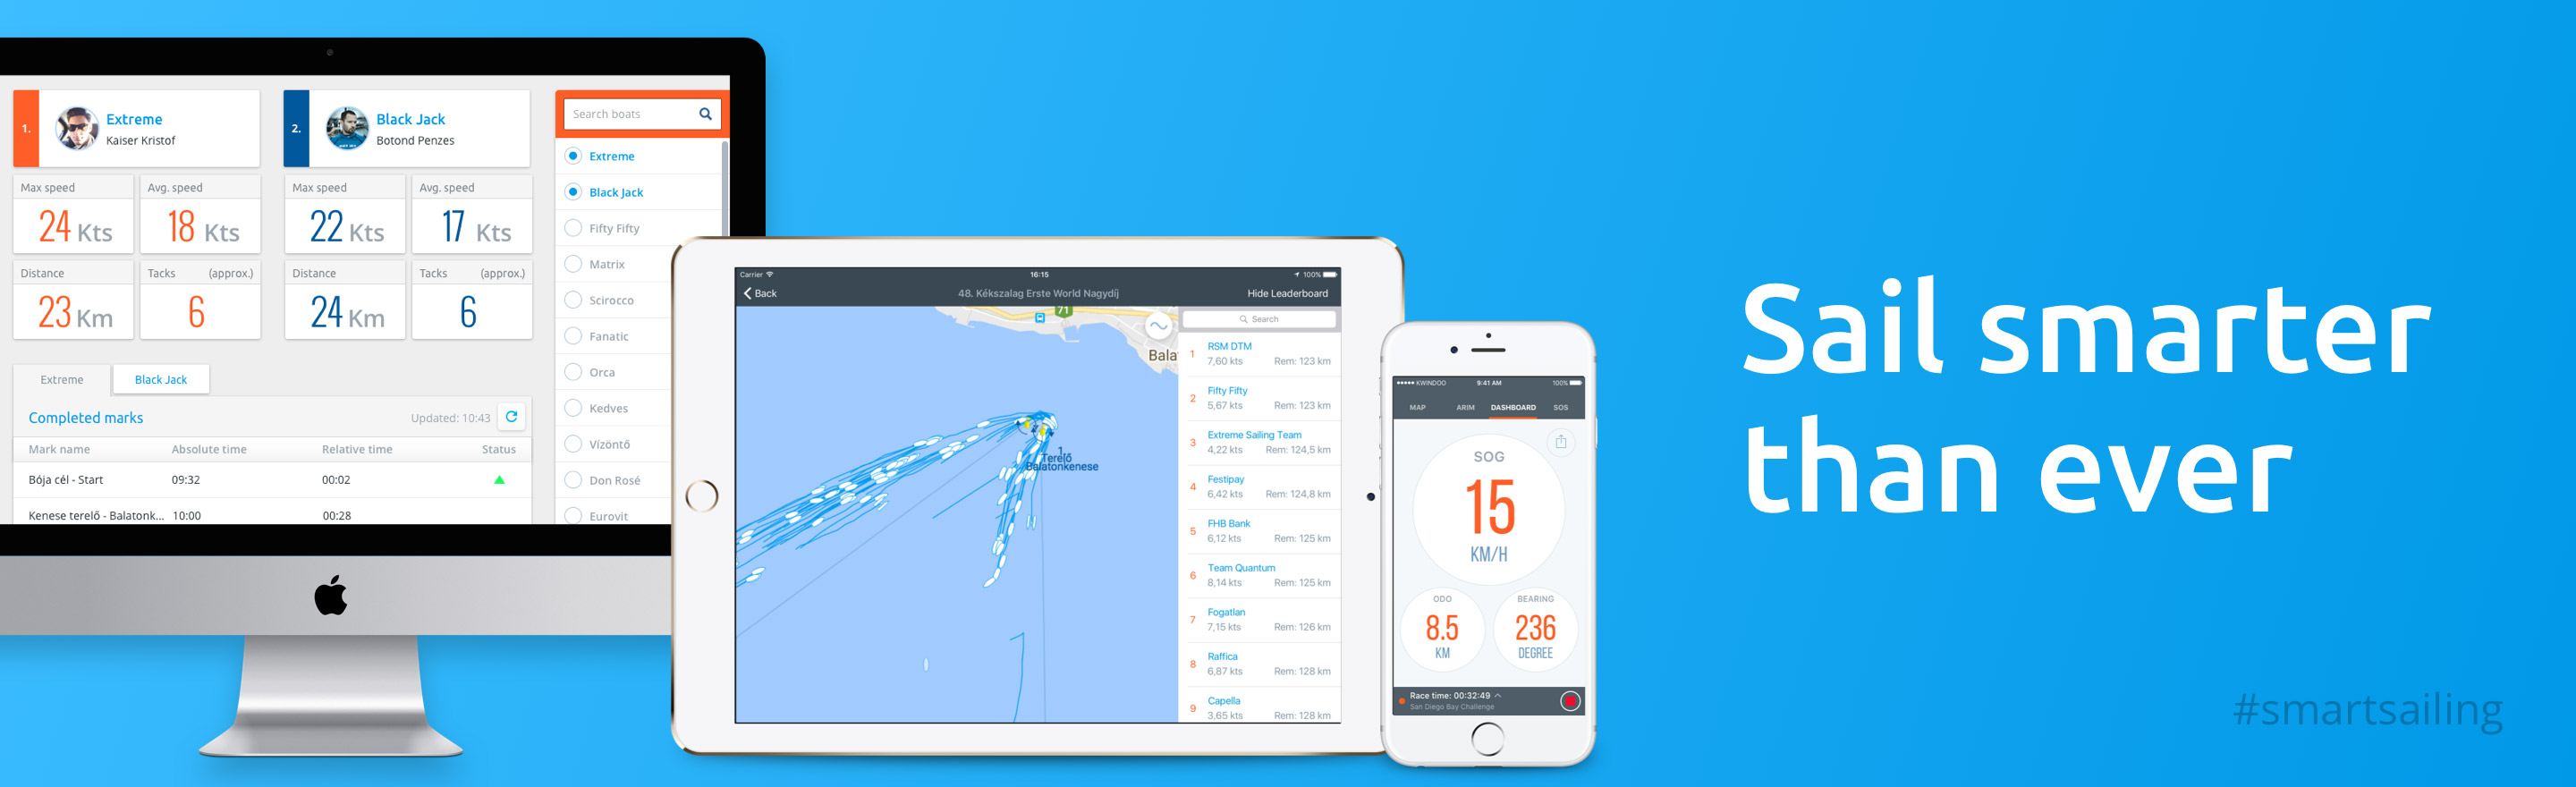 Sail smarter than ever! - Kwindoo, the regatta organizer system